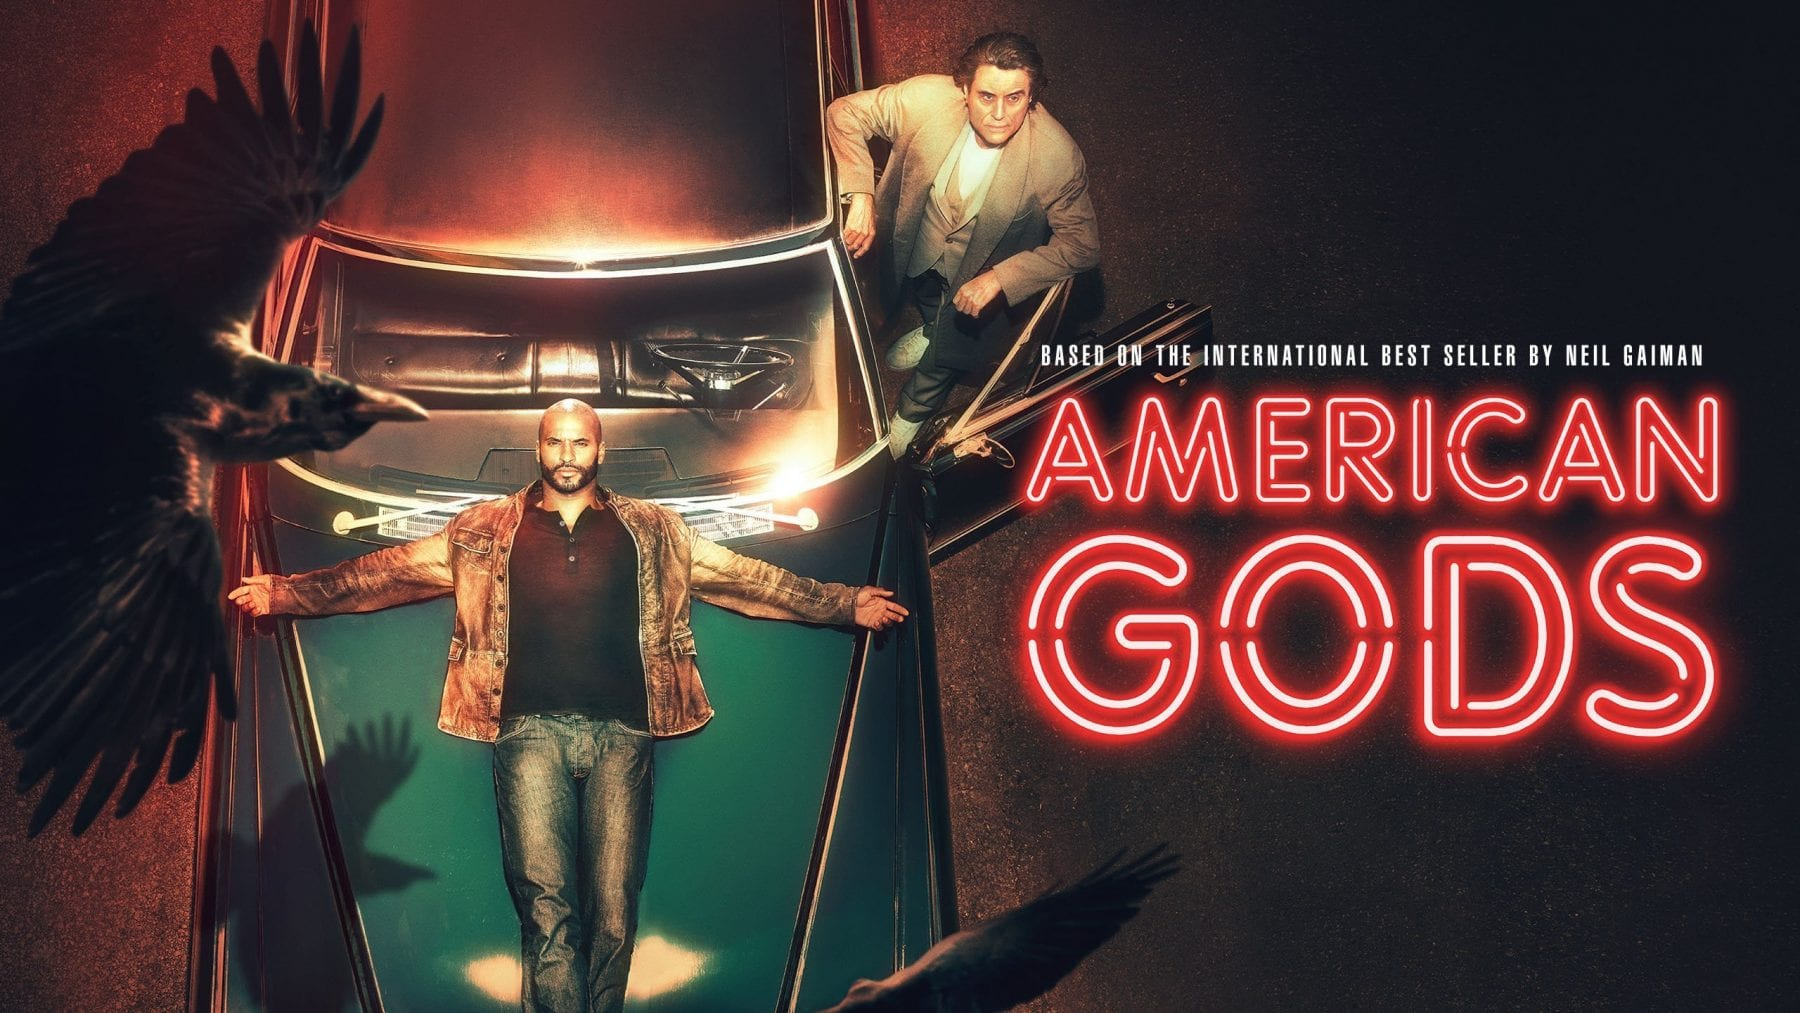 War is Coming – Neil Gaiman's American Gods